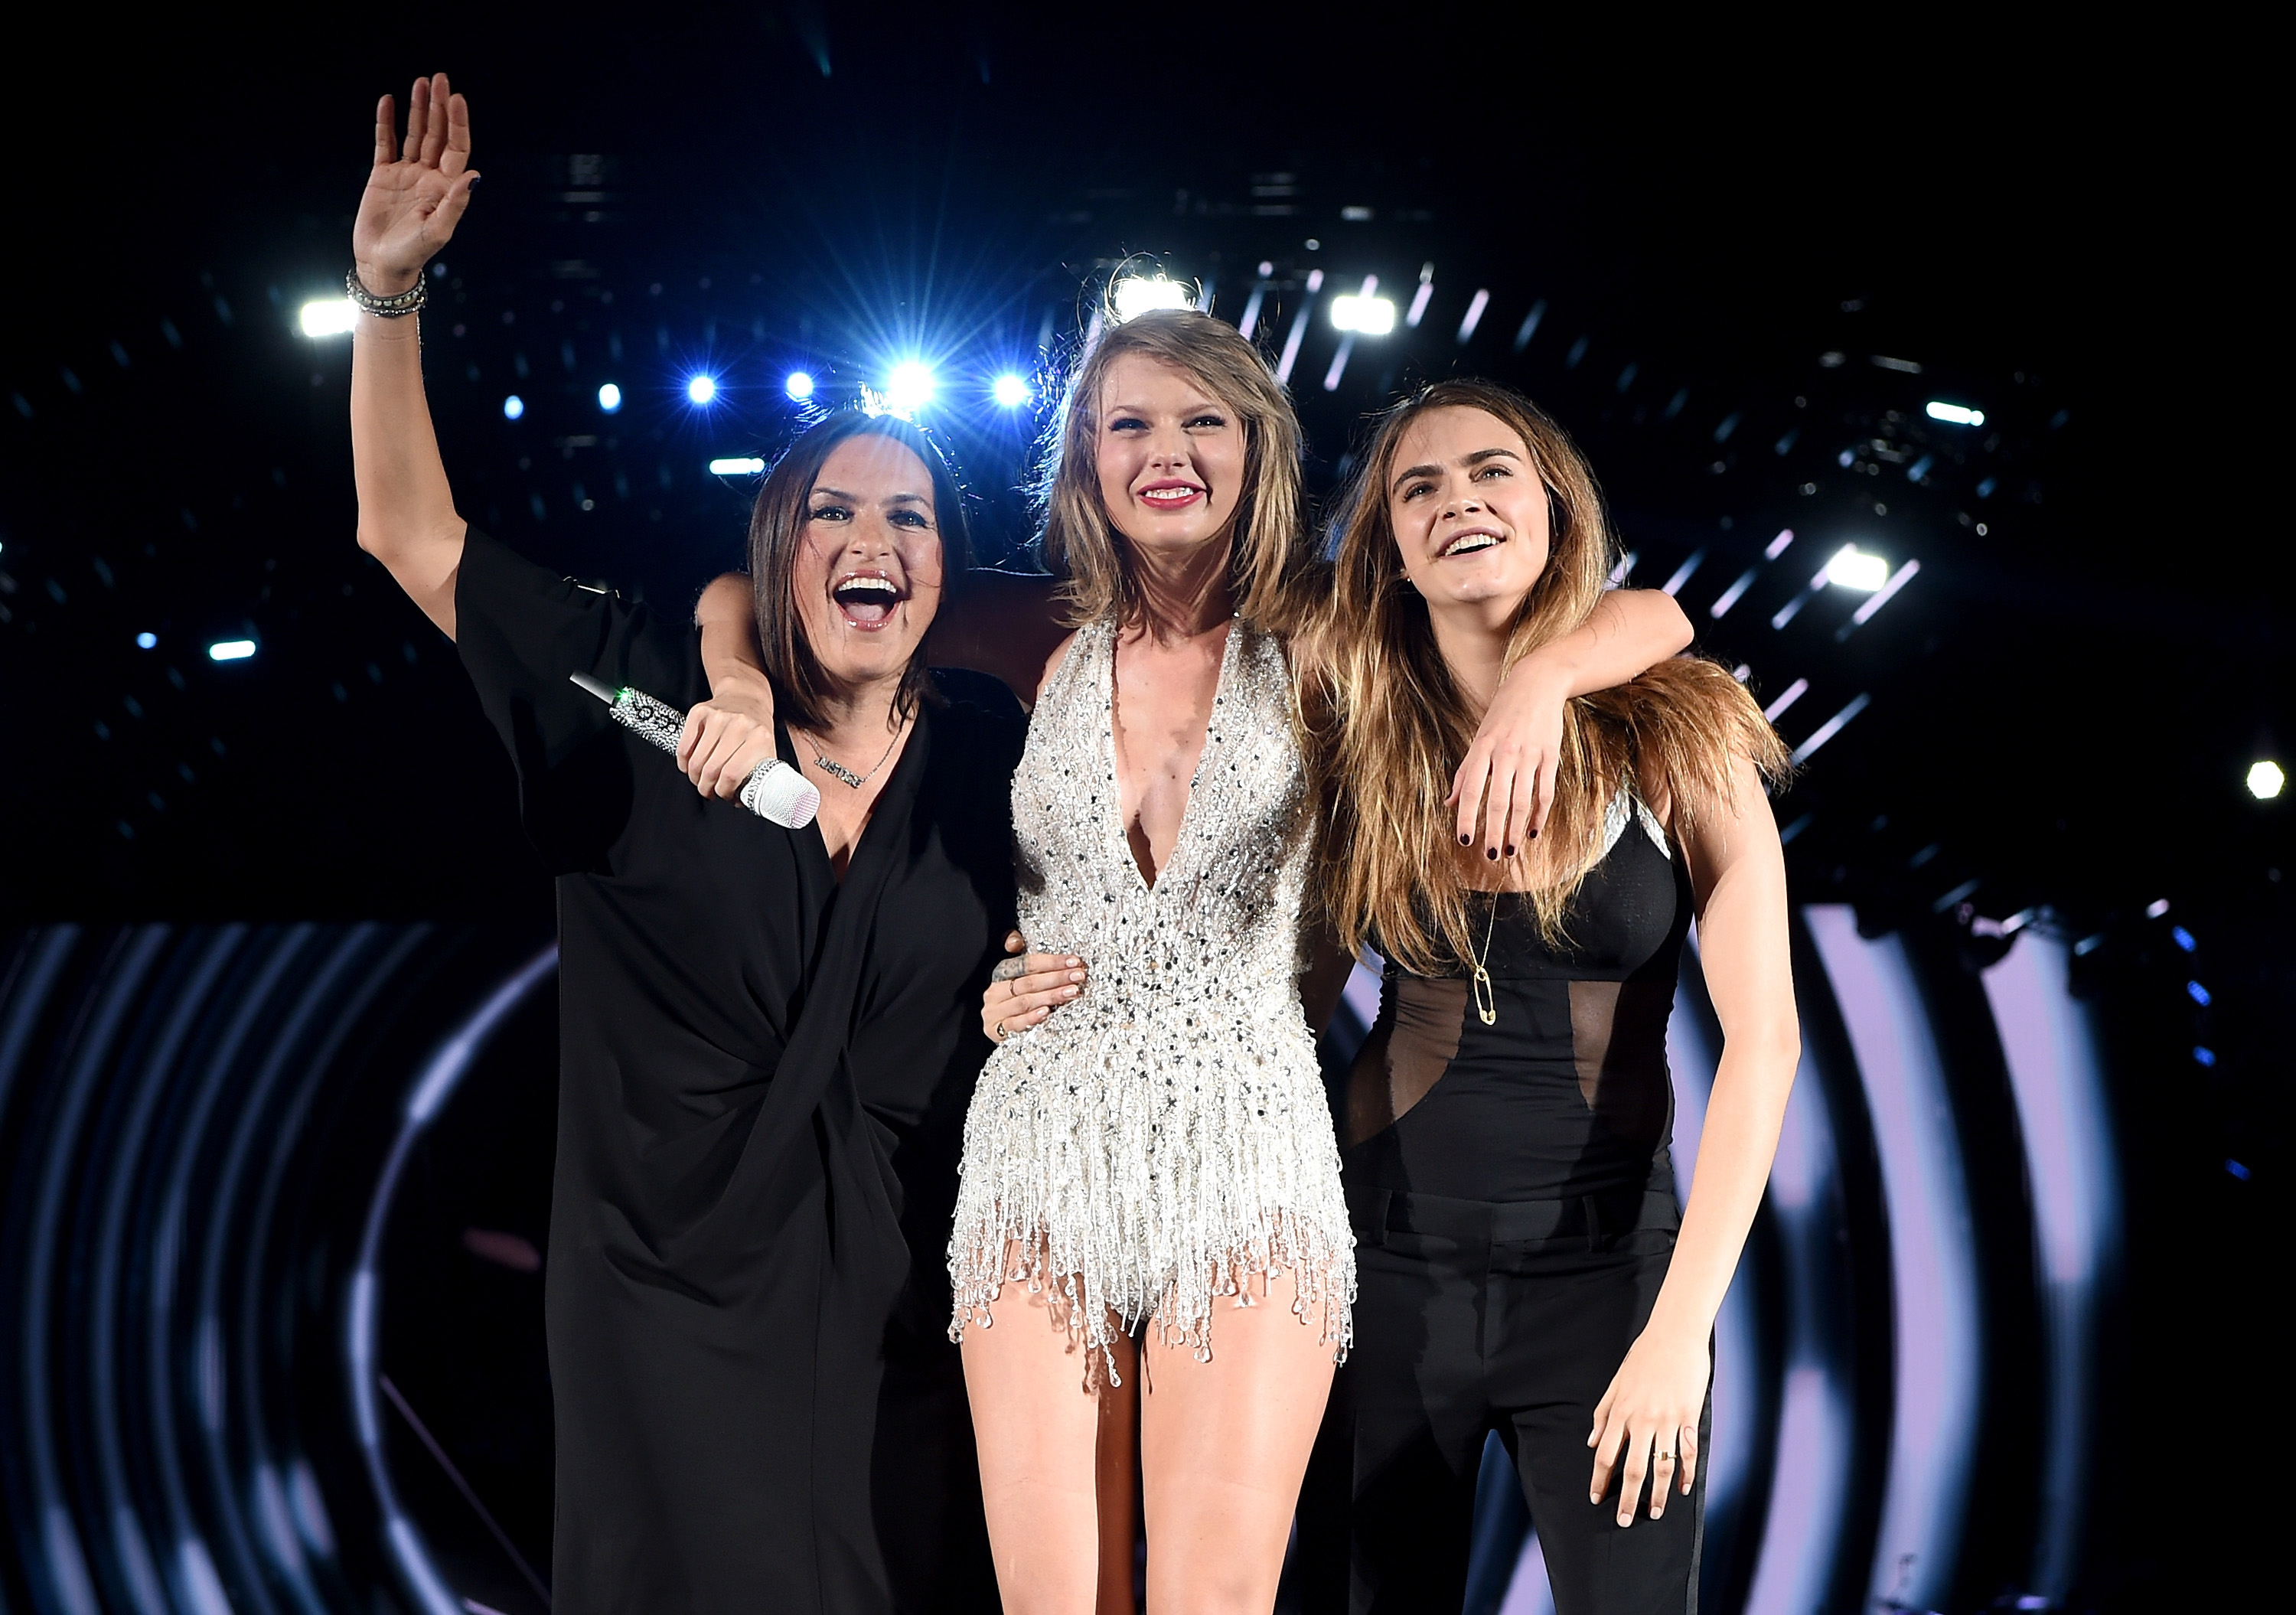 (L-R) Mariska Hargitay, Taylor Swift, and Cara Delevingne pose onstage during The 1989 World Tour on June 12, 2015 at Lincoln Financial Field in Philadelphia.